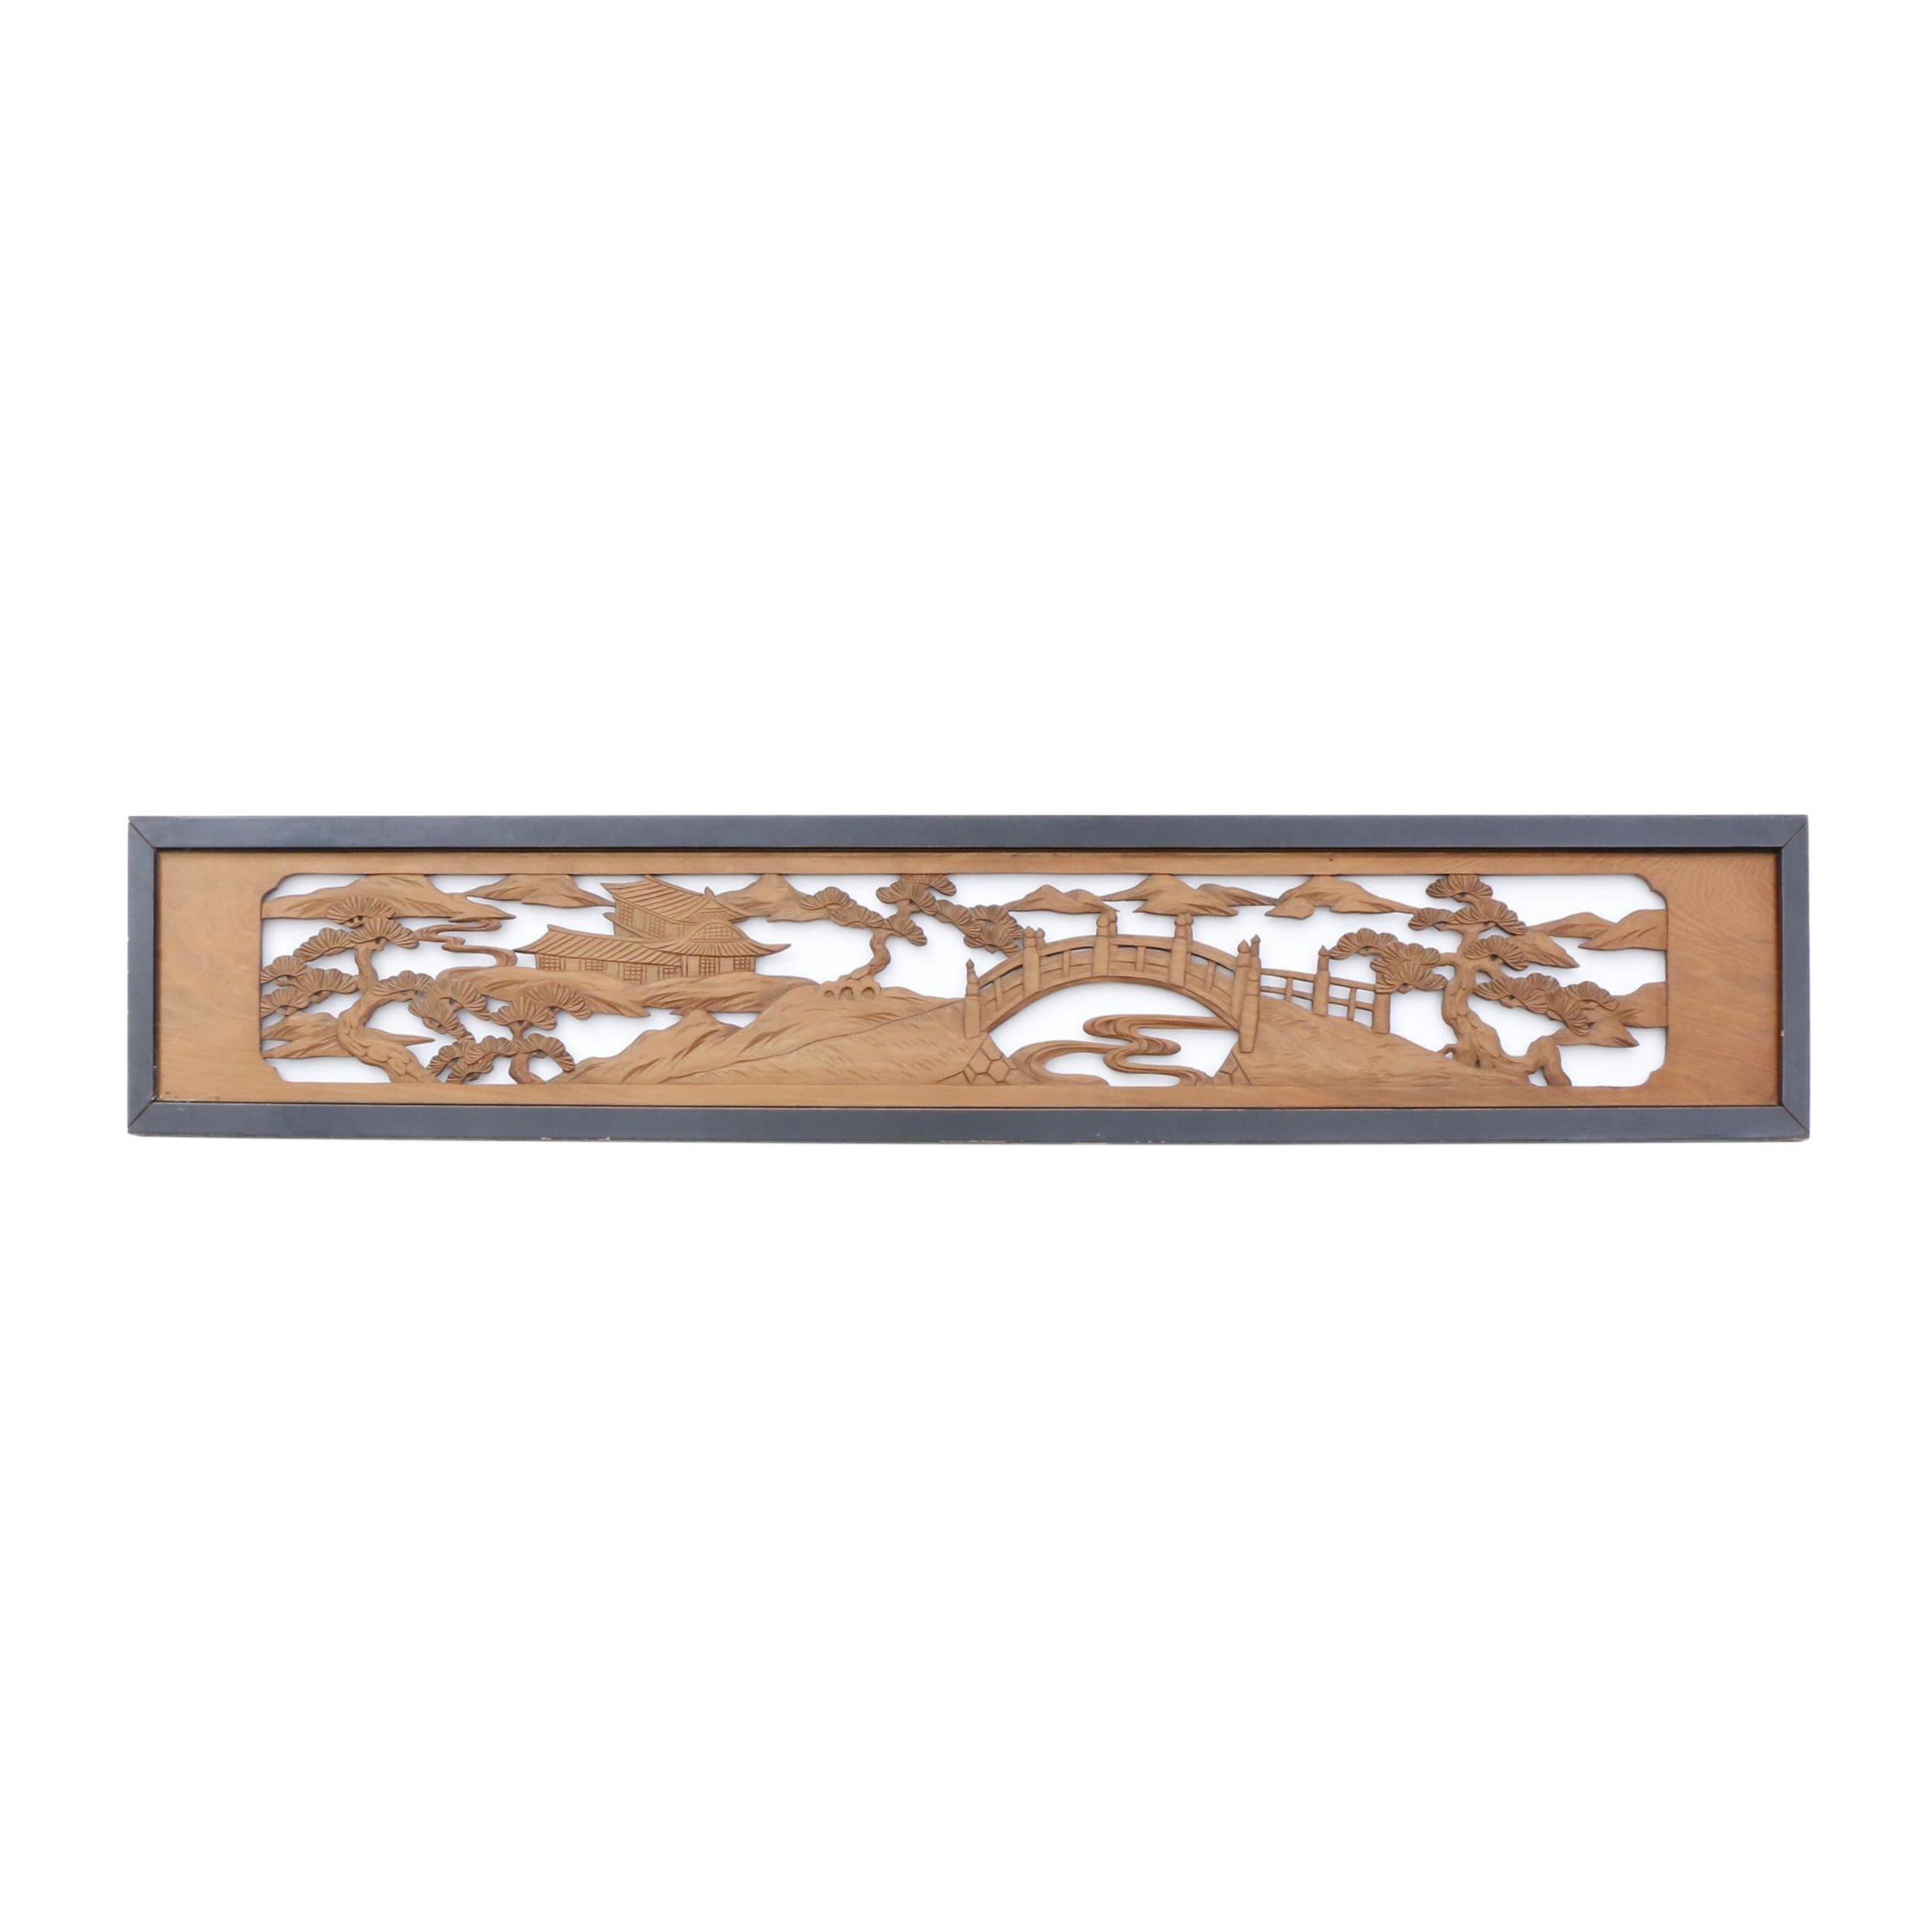 Japanese Open Carved Decorative Wooden Panel